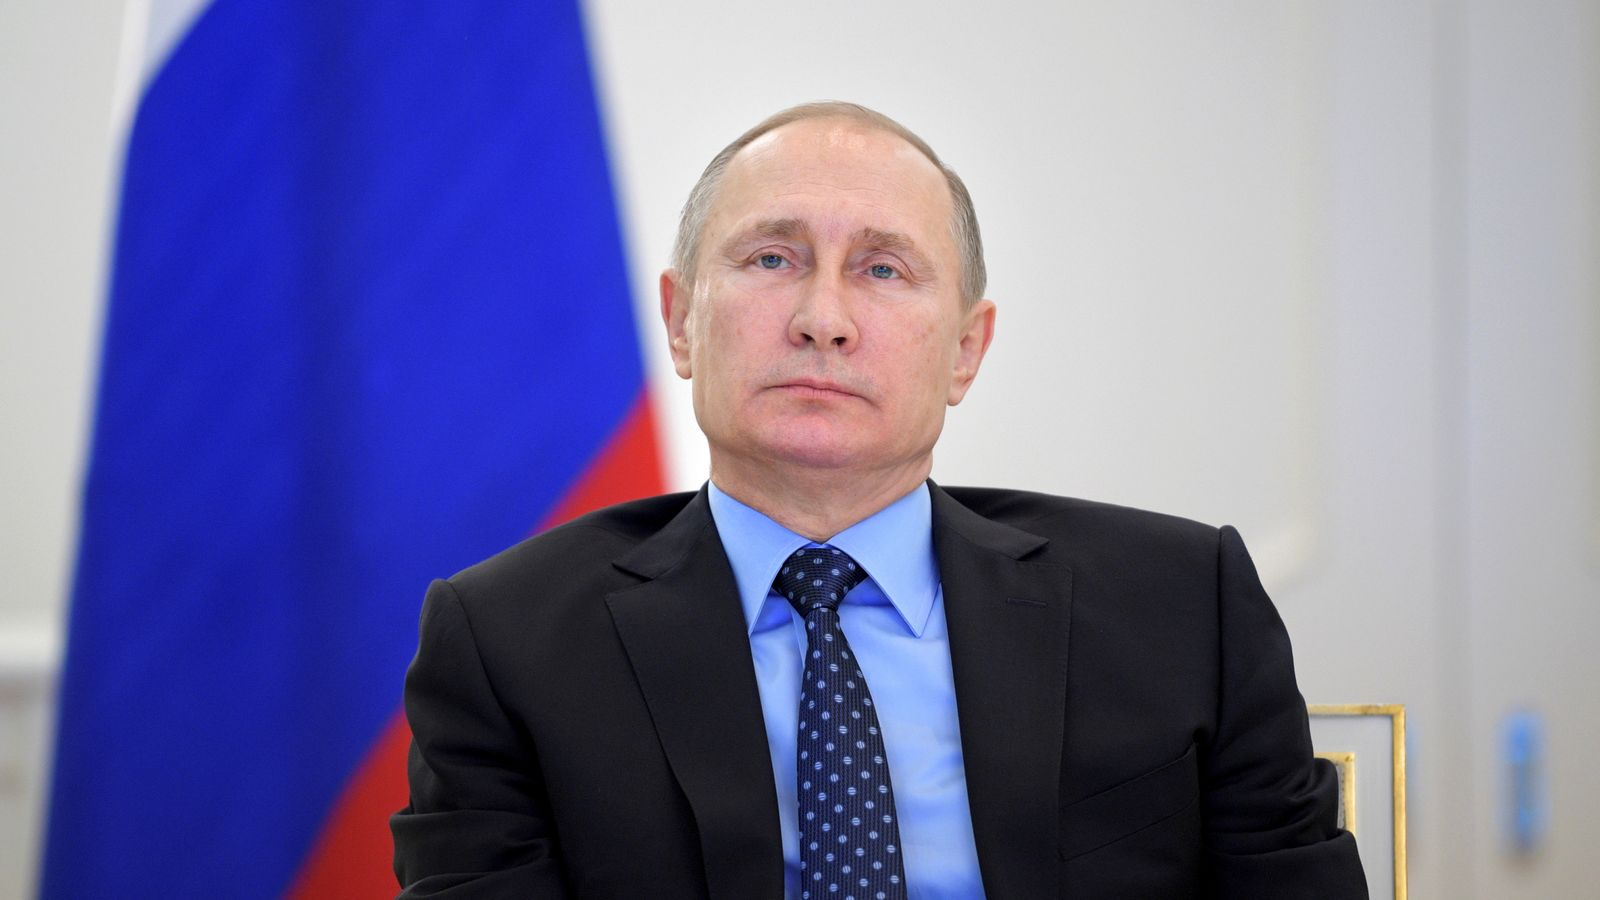 Vladimir Putin has said he will not expel American diplomats